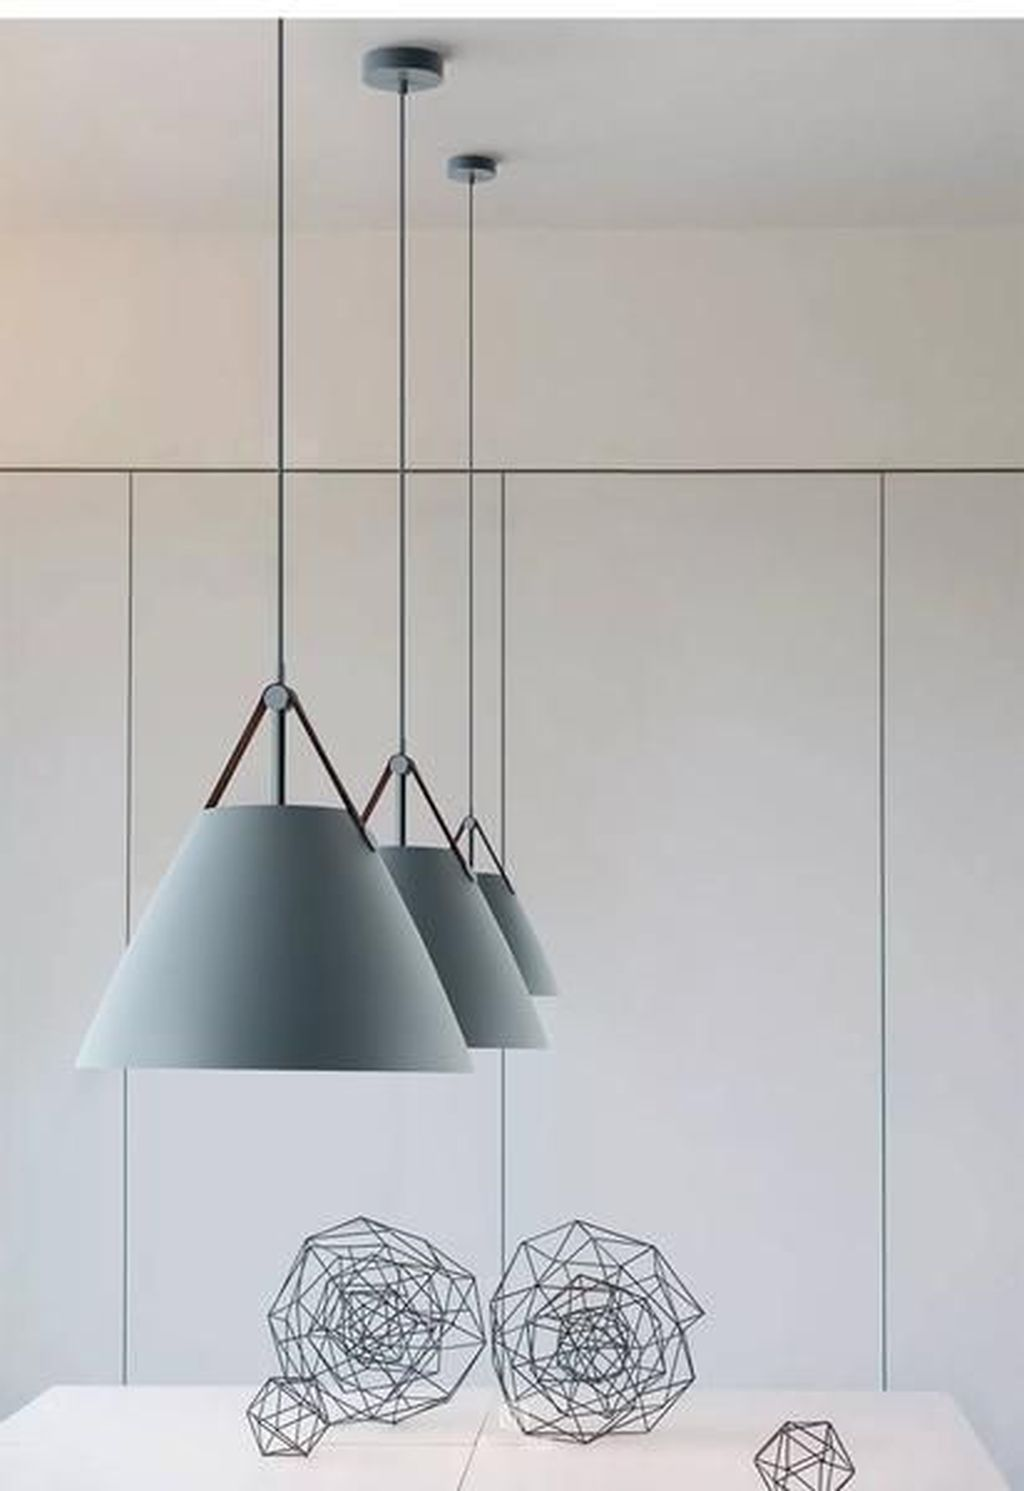 Hanging Plant Box Frame Pendant Light 60w Cage Ceiling Light Diy Pendant Light Plant Lighting Frame Pendant Light